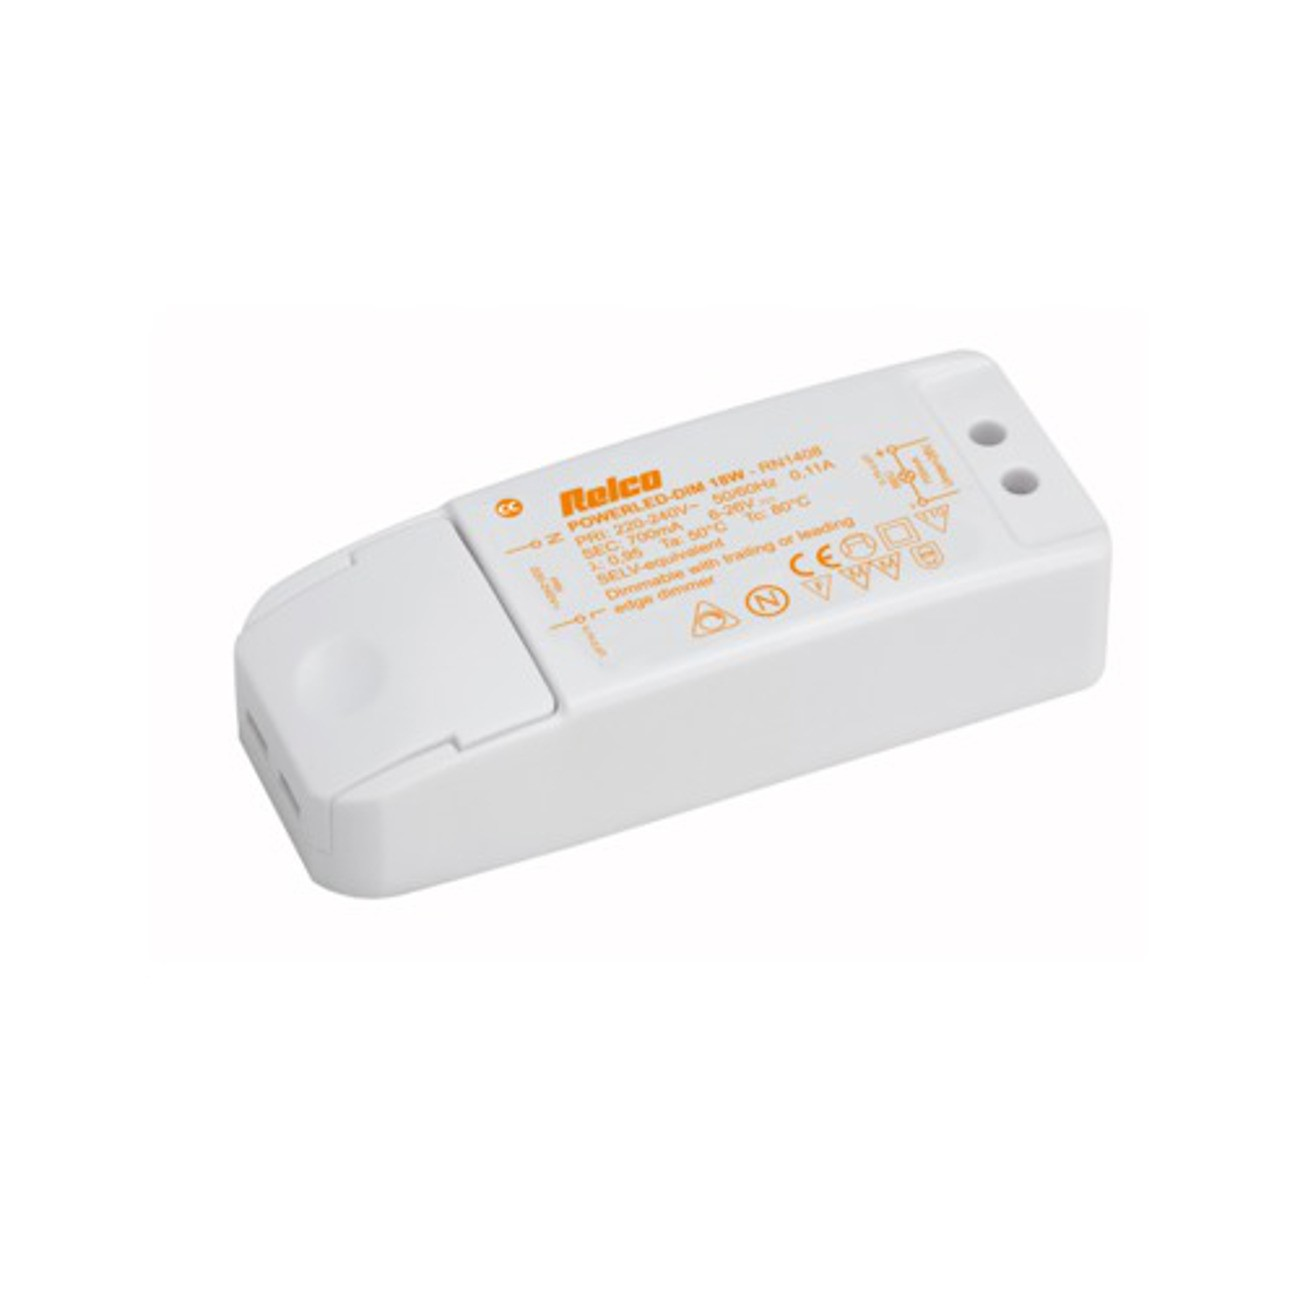 Dimmbarer 700mA LED Treiber 1-18W DIMMABLE DRIVER